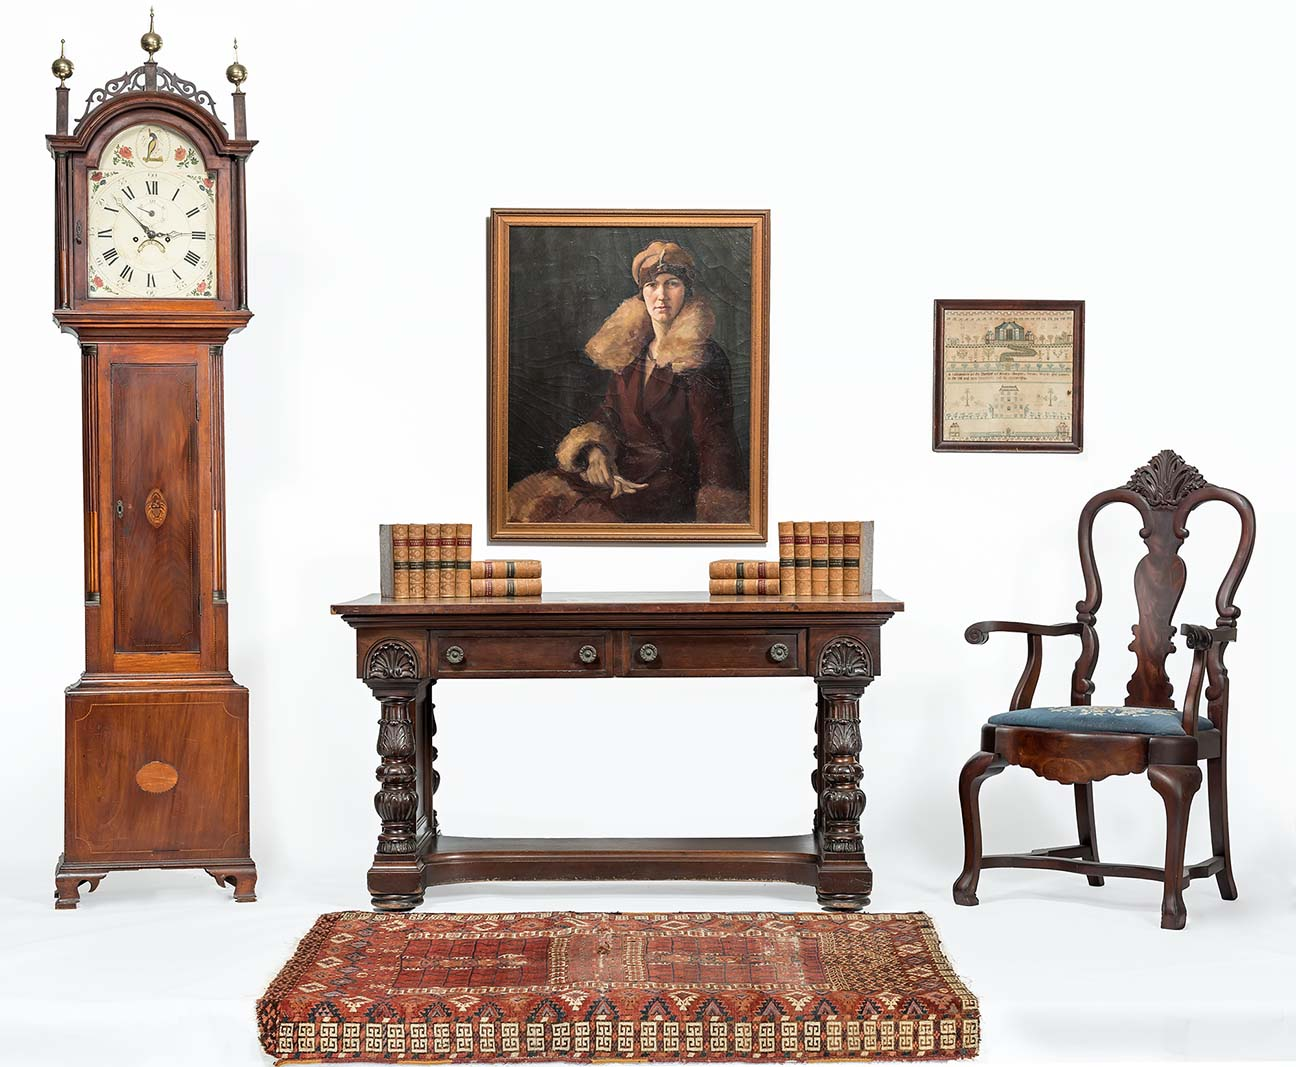 Maple Tall Case Clock The Dial Marked R Perkins Jaffrey No 71 Pair Pierced Back Chippendale Side Chairs With Fan Carved Crests And Ears